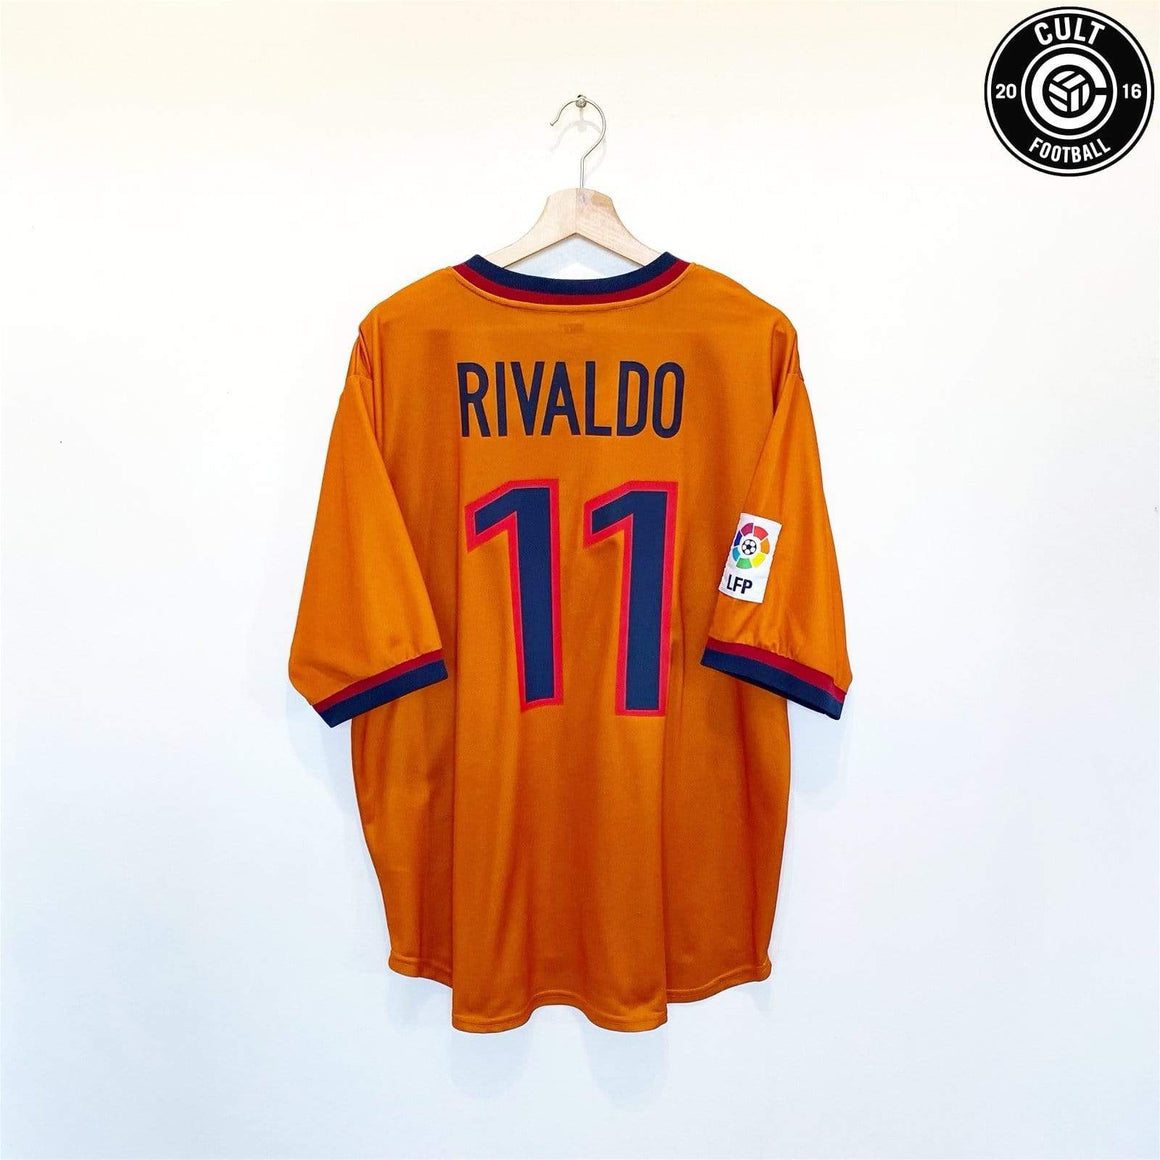 Cult Football 1998/00 RIVALDO #11 Barcelona Vintage Nike Away Football Shirt Jersey (XL) Brazil